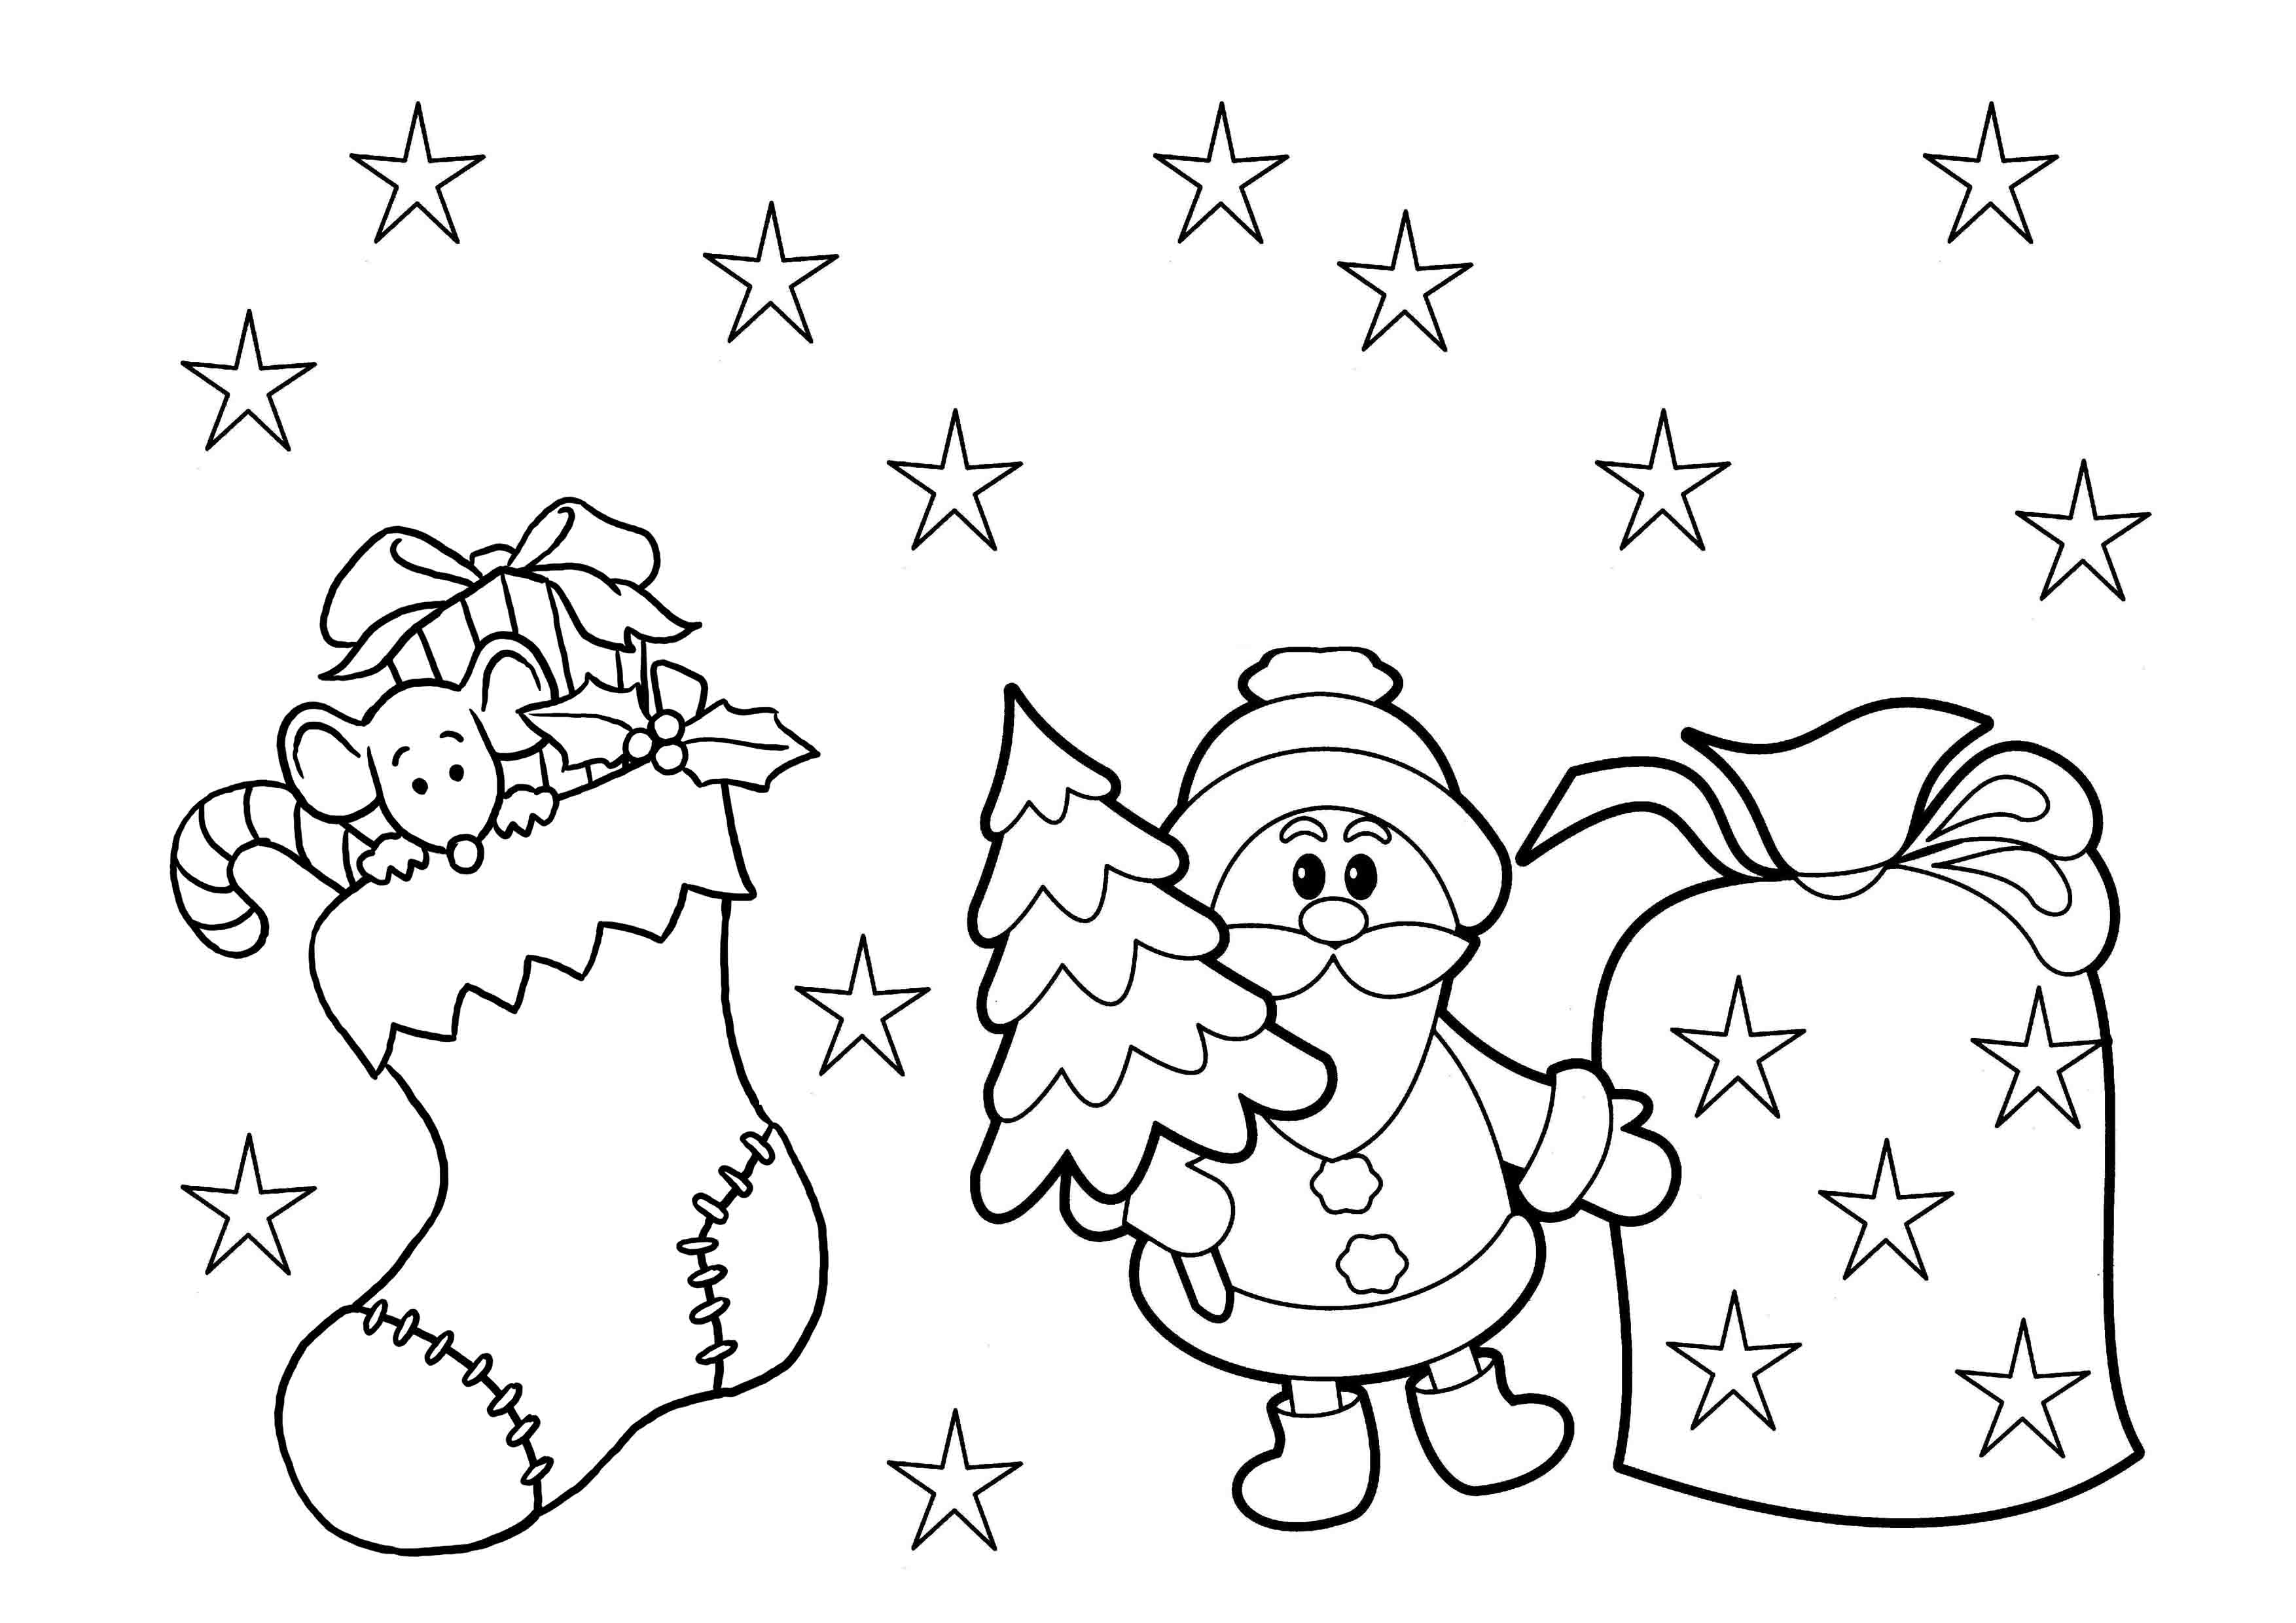 Print & Download - Printable Christmas Coloring Pages For Kids - Free Printable Christmas Coloring Pages And Activities